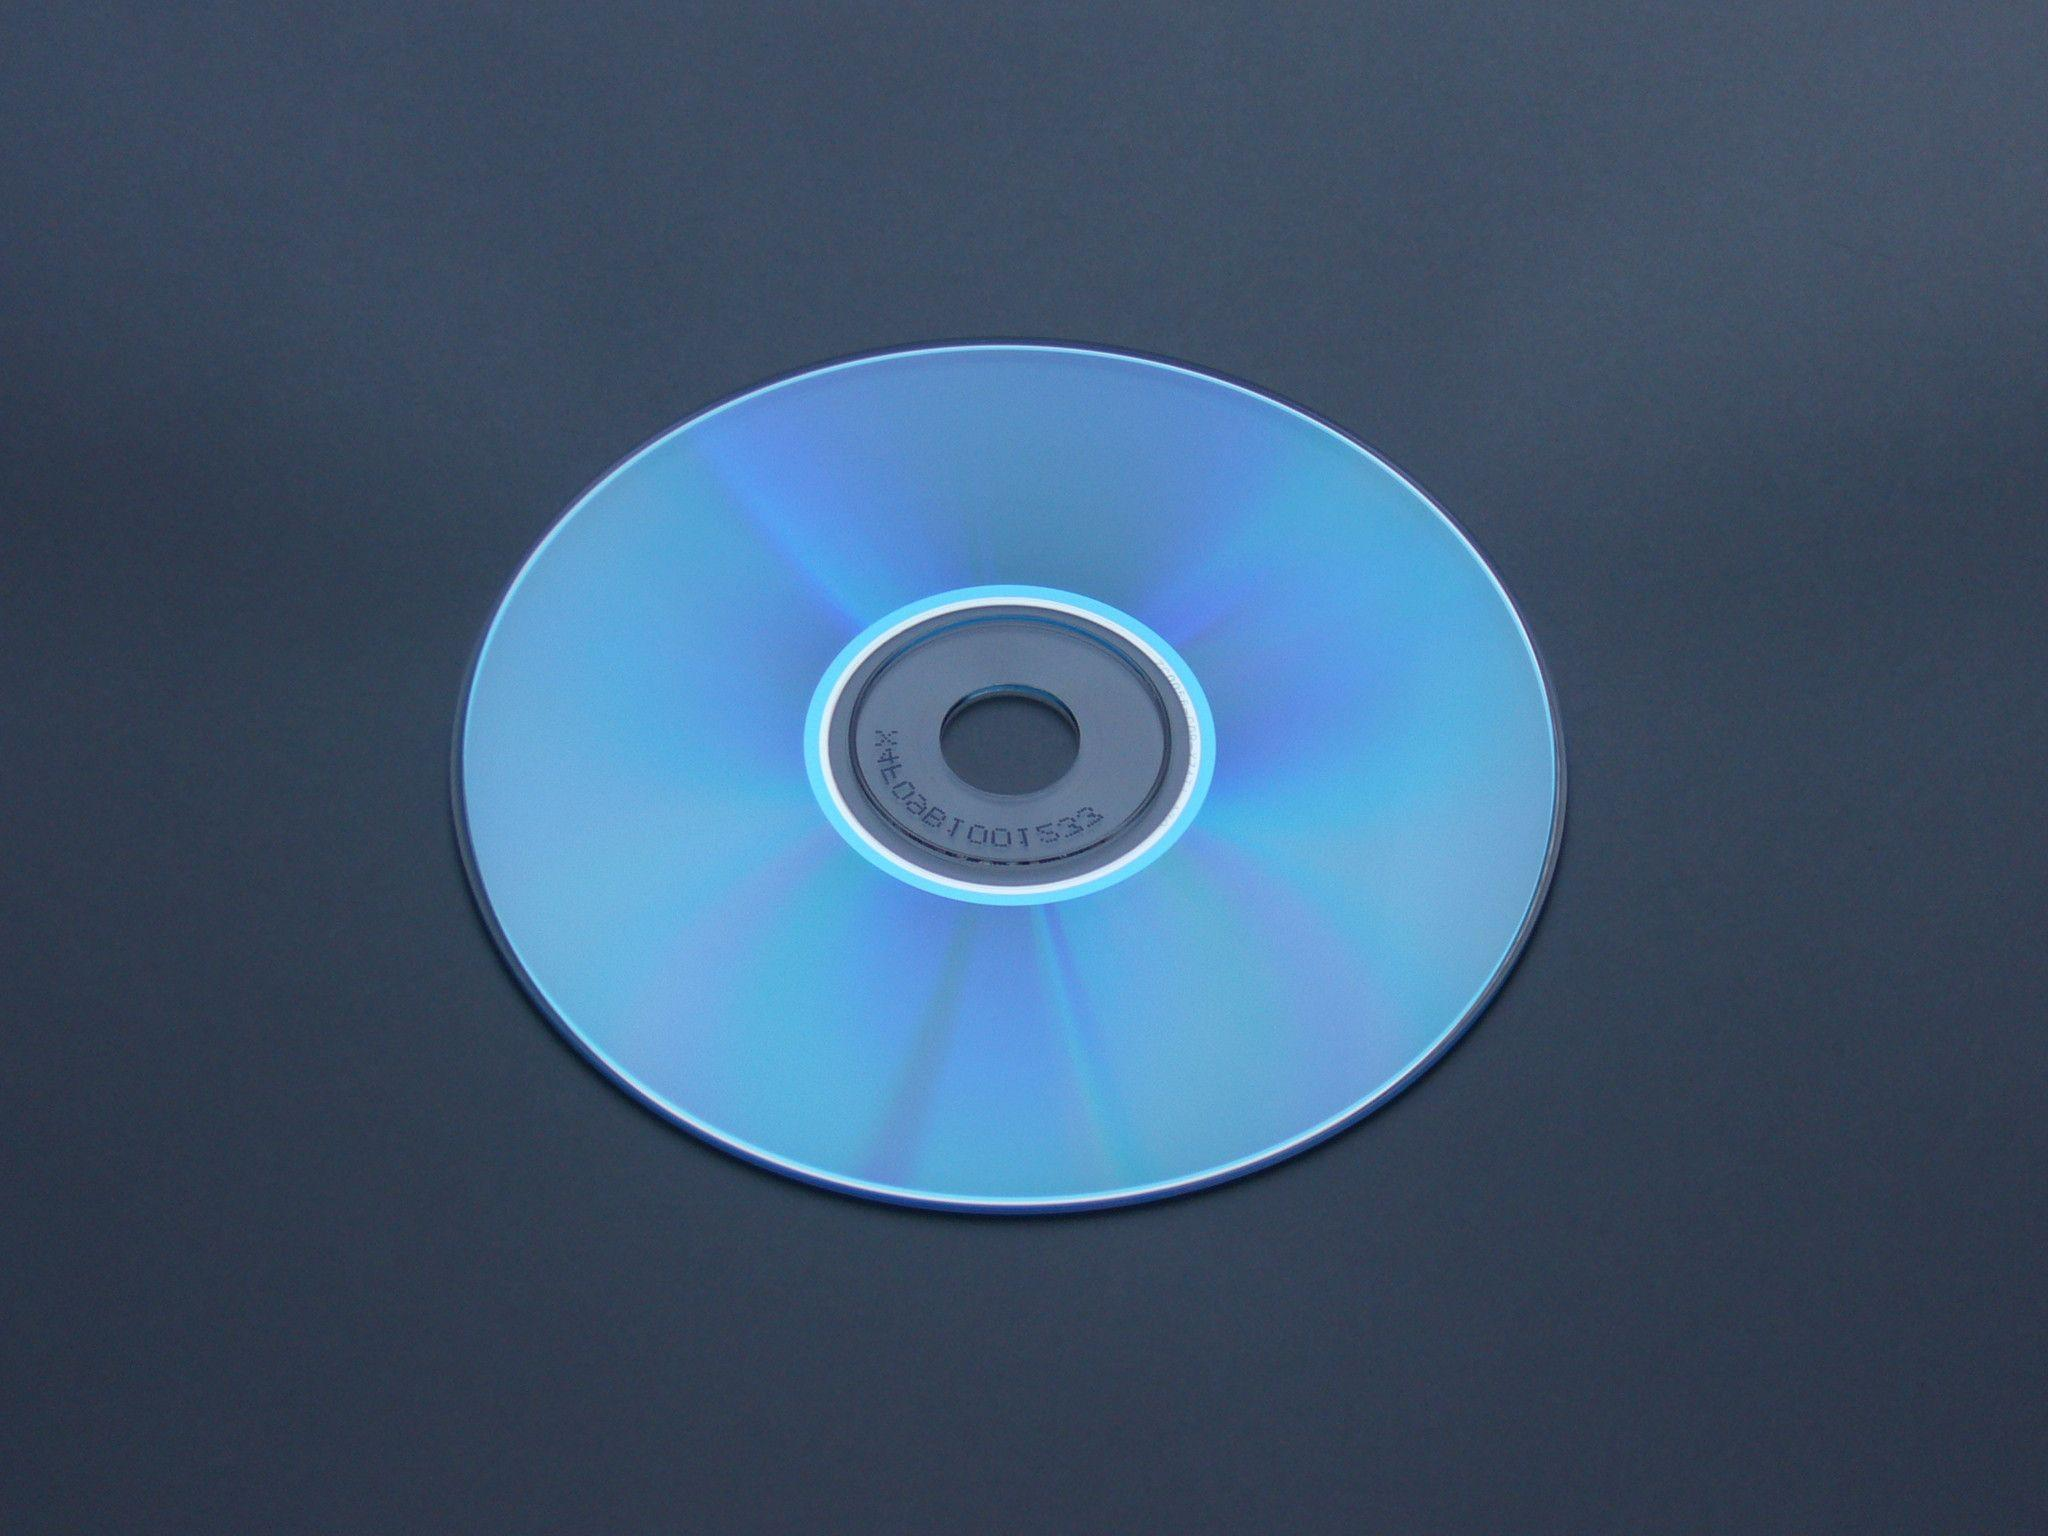 the features of the technology of compact discs Compact disc (cd), a small plastic disc used for the storage of digital data as originally developed for audio systems, the sound signal is sampled at a rate of 44,100 times a second, then each sample is measured and digitally encoded on the 4 3⁄4 in (12 cm) disc as a series of microscopic.